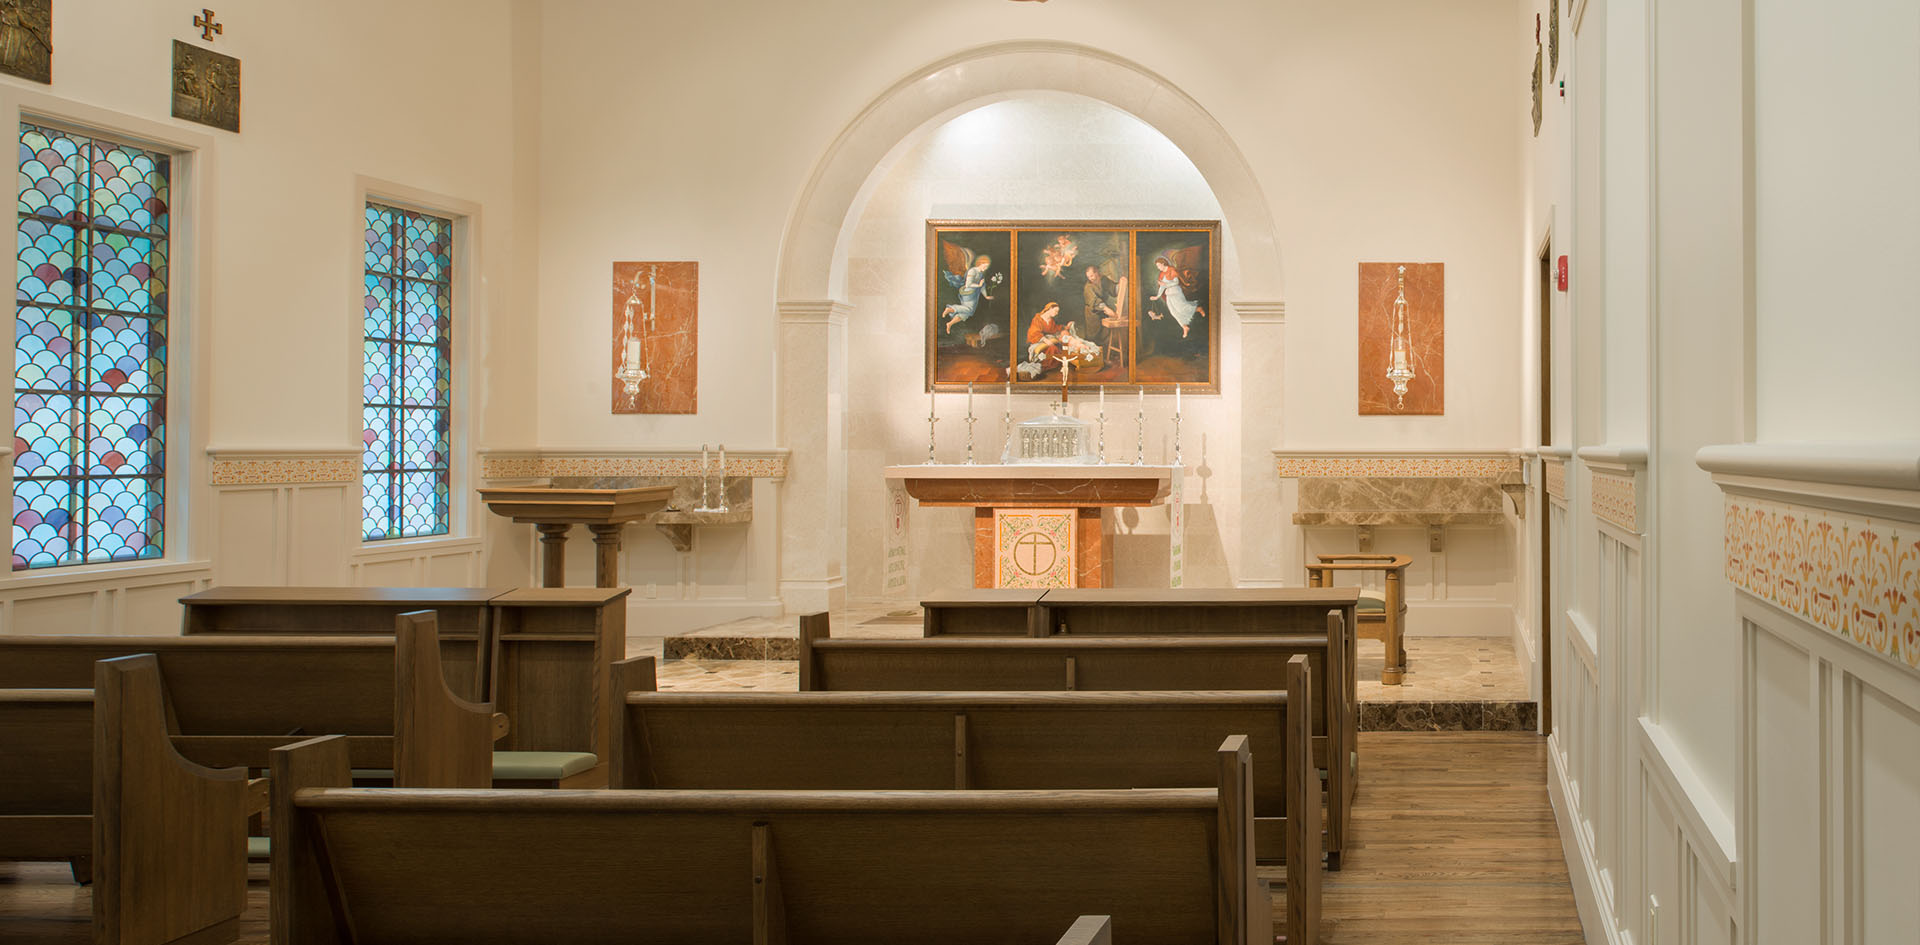 Chapel Award winning Opus Dei, Oratory, Sacristy, liturgical space, young women, daily mass, exposed beams, stained glass, altar mosaic inlay